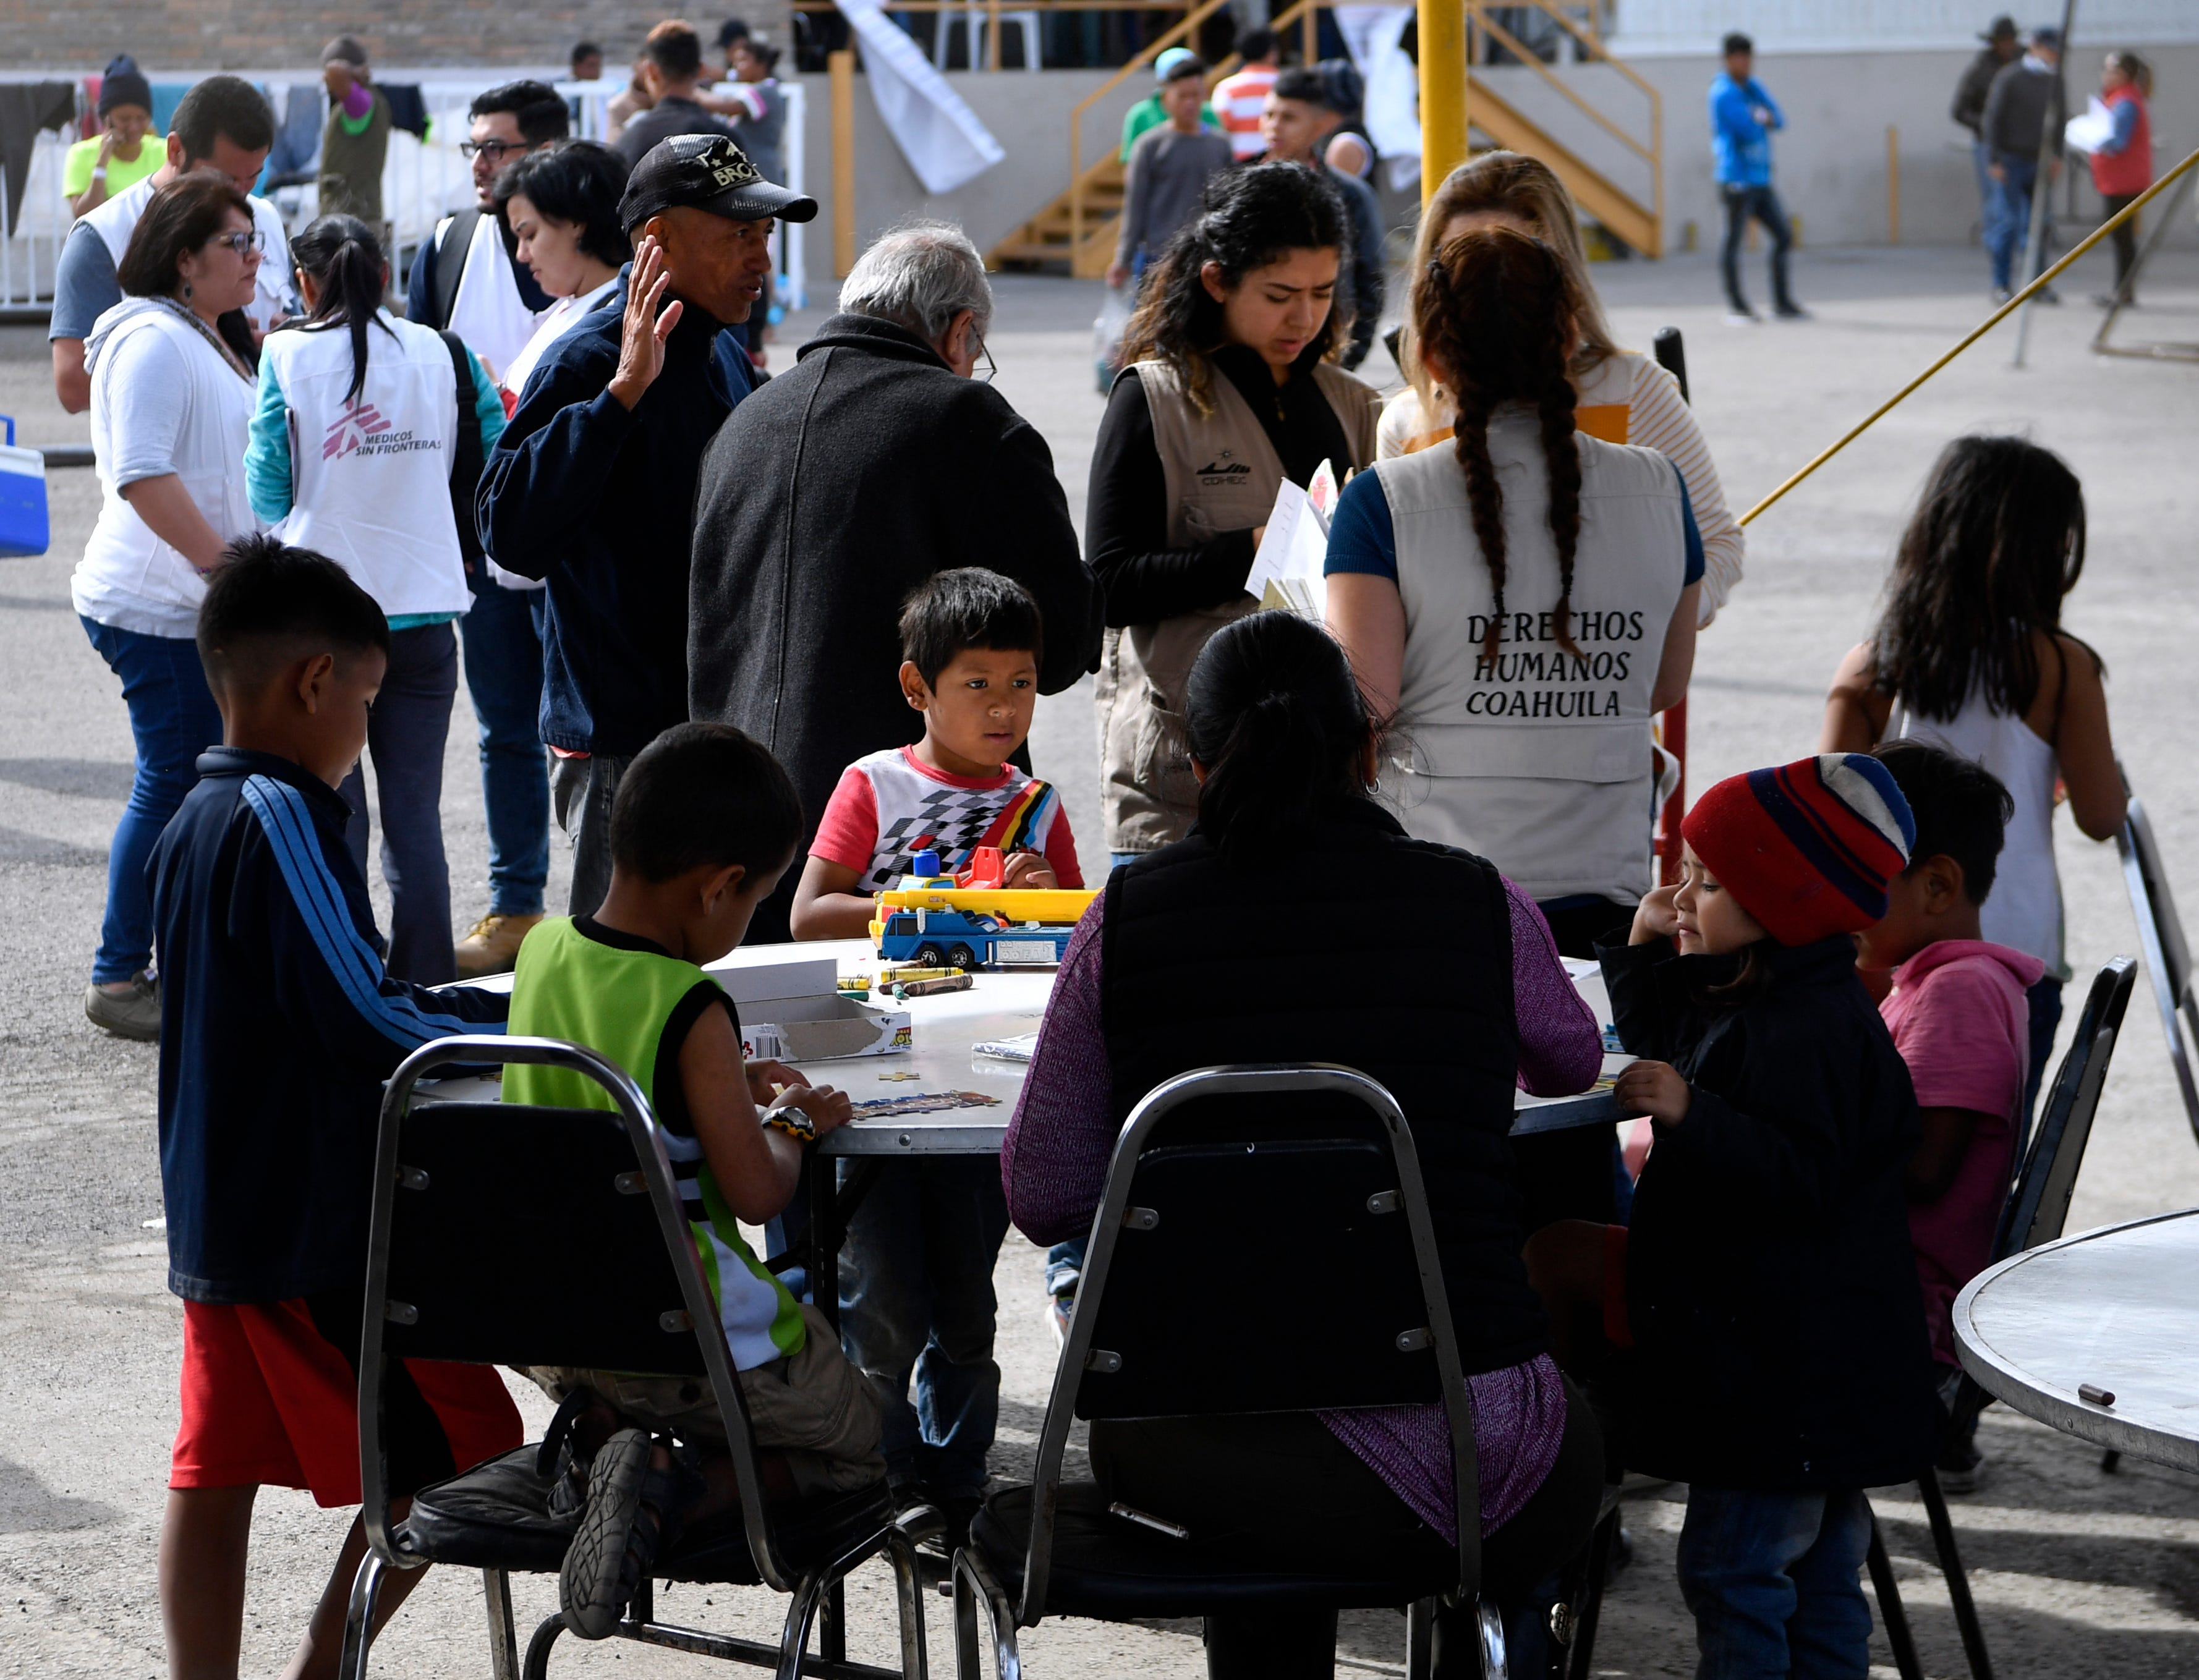 Children are led in an educational activity in the outdoor common area at the Migrant Hostel in Piedras Negras, Mexico, on Thursday, Feb. 7, 2019. About 1,800 young adults and families with children arrived here on Monday from Central America. Representatives from medical care missions like Doctors Without Borders were seen entering and exiting the compound, which is a former factory.